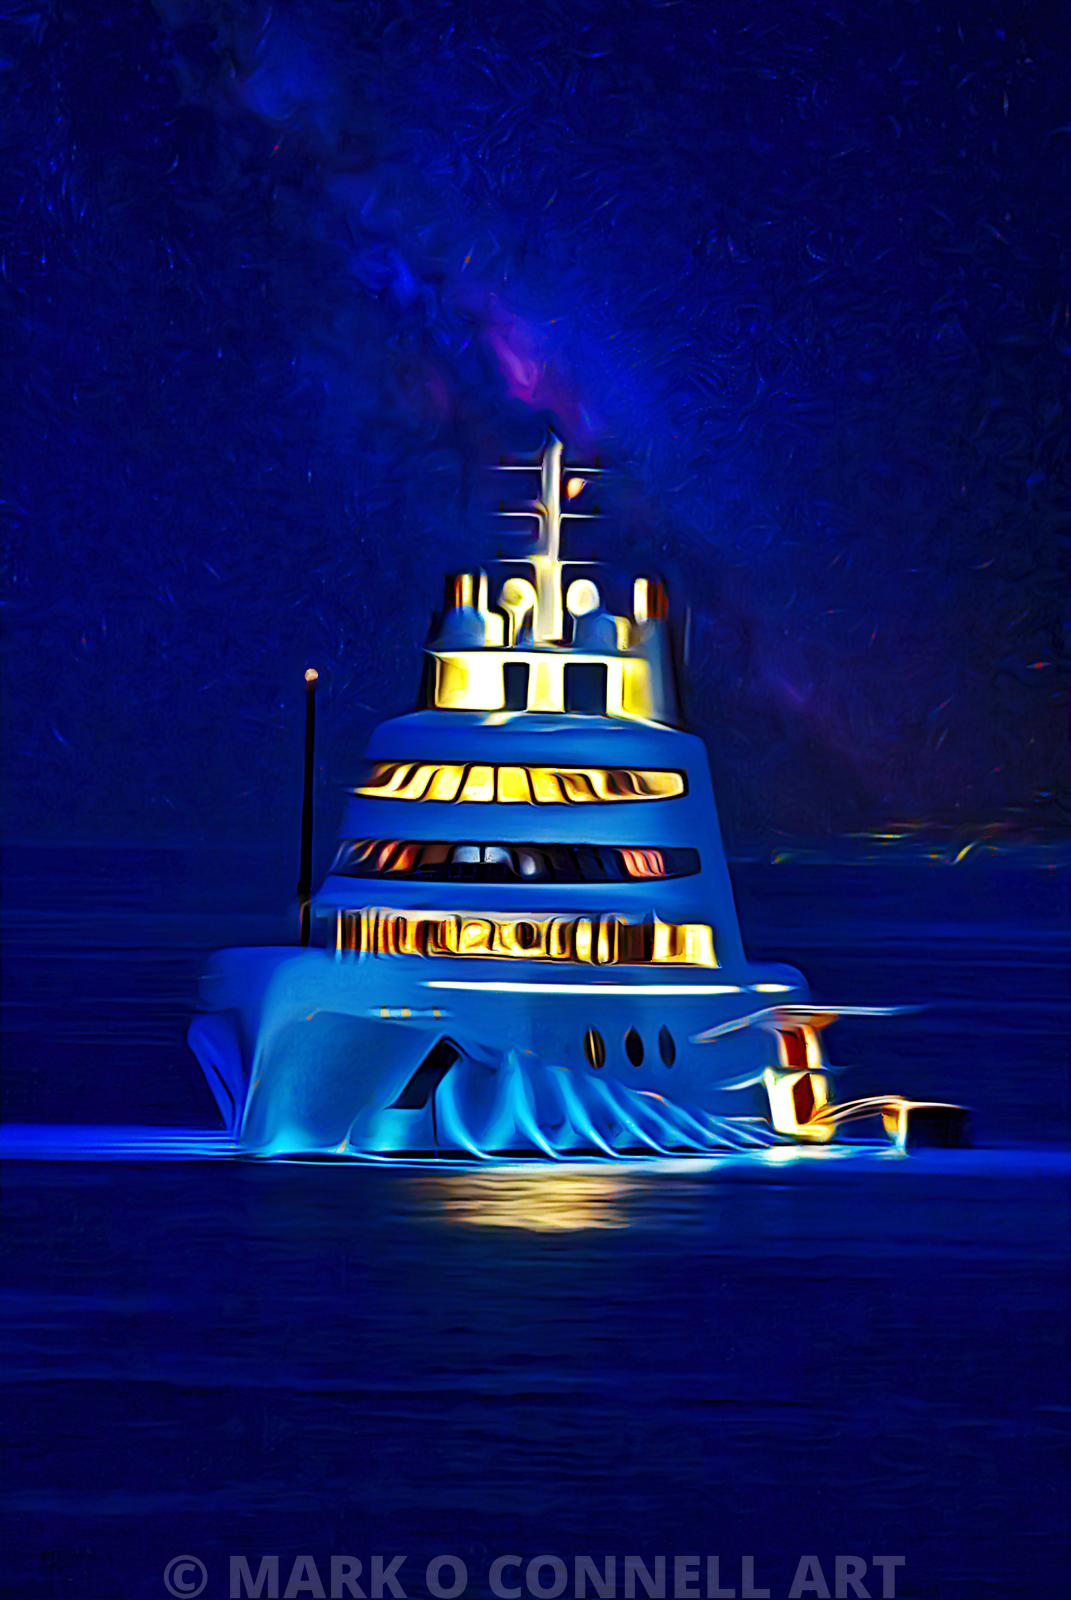 A,superyacht,lurssen,russian,underwater lights,painting,art,airbrush,abstract,stars,night sky,water,ocean,sea,at anchor,tender